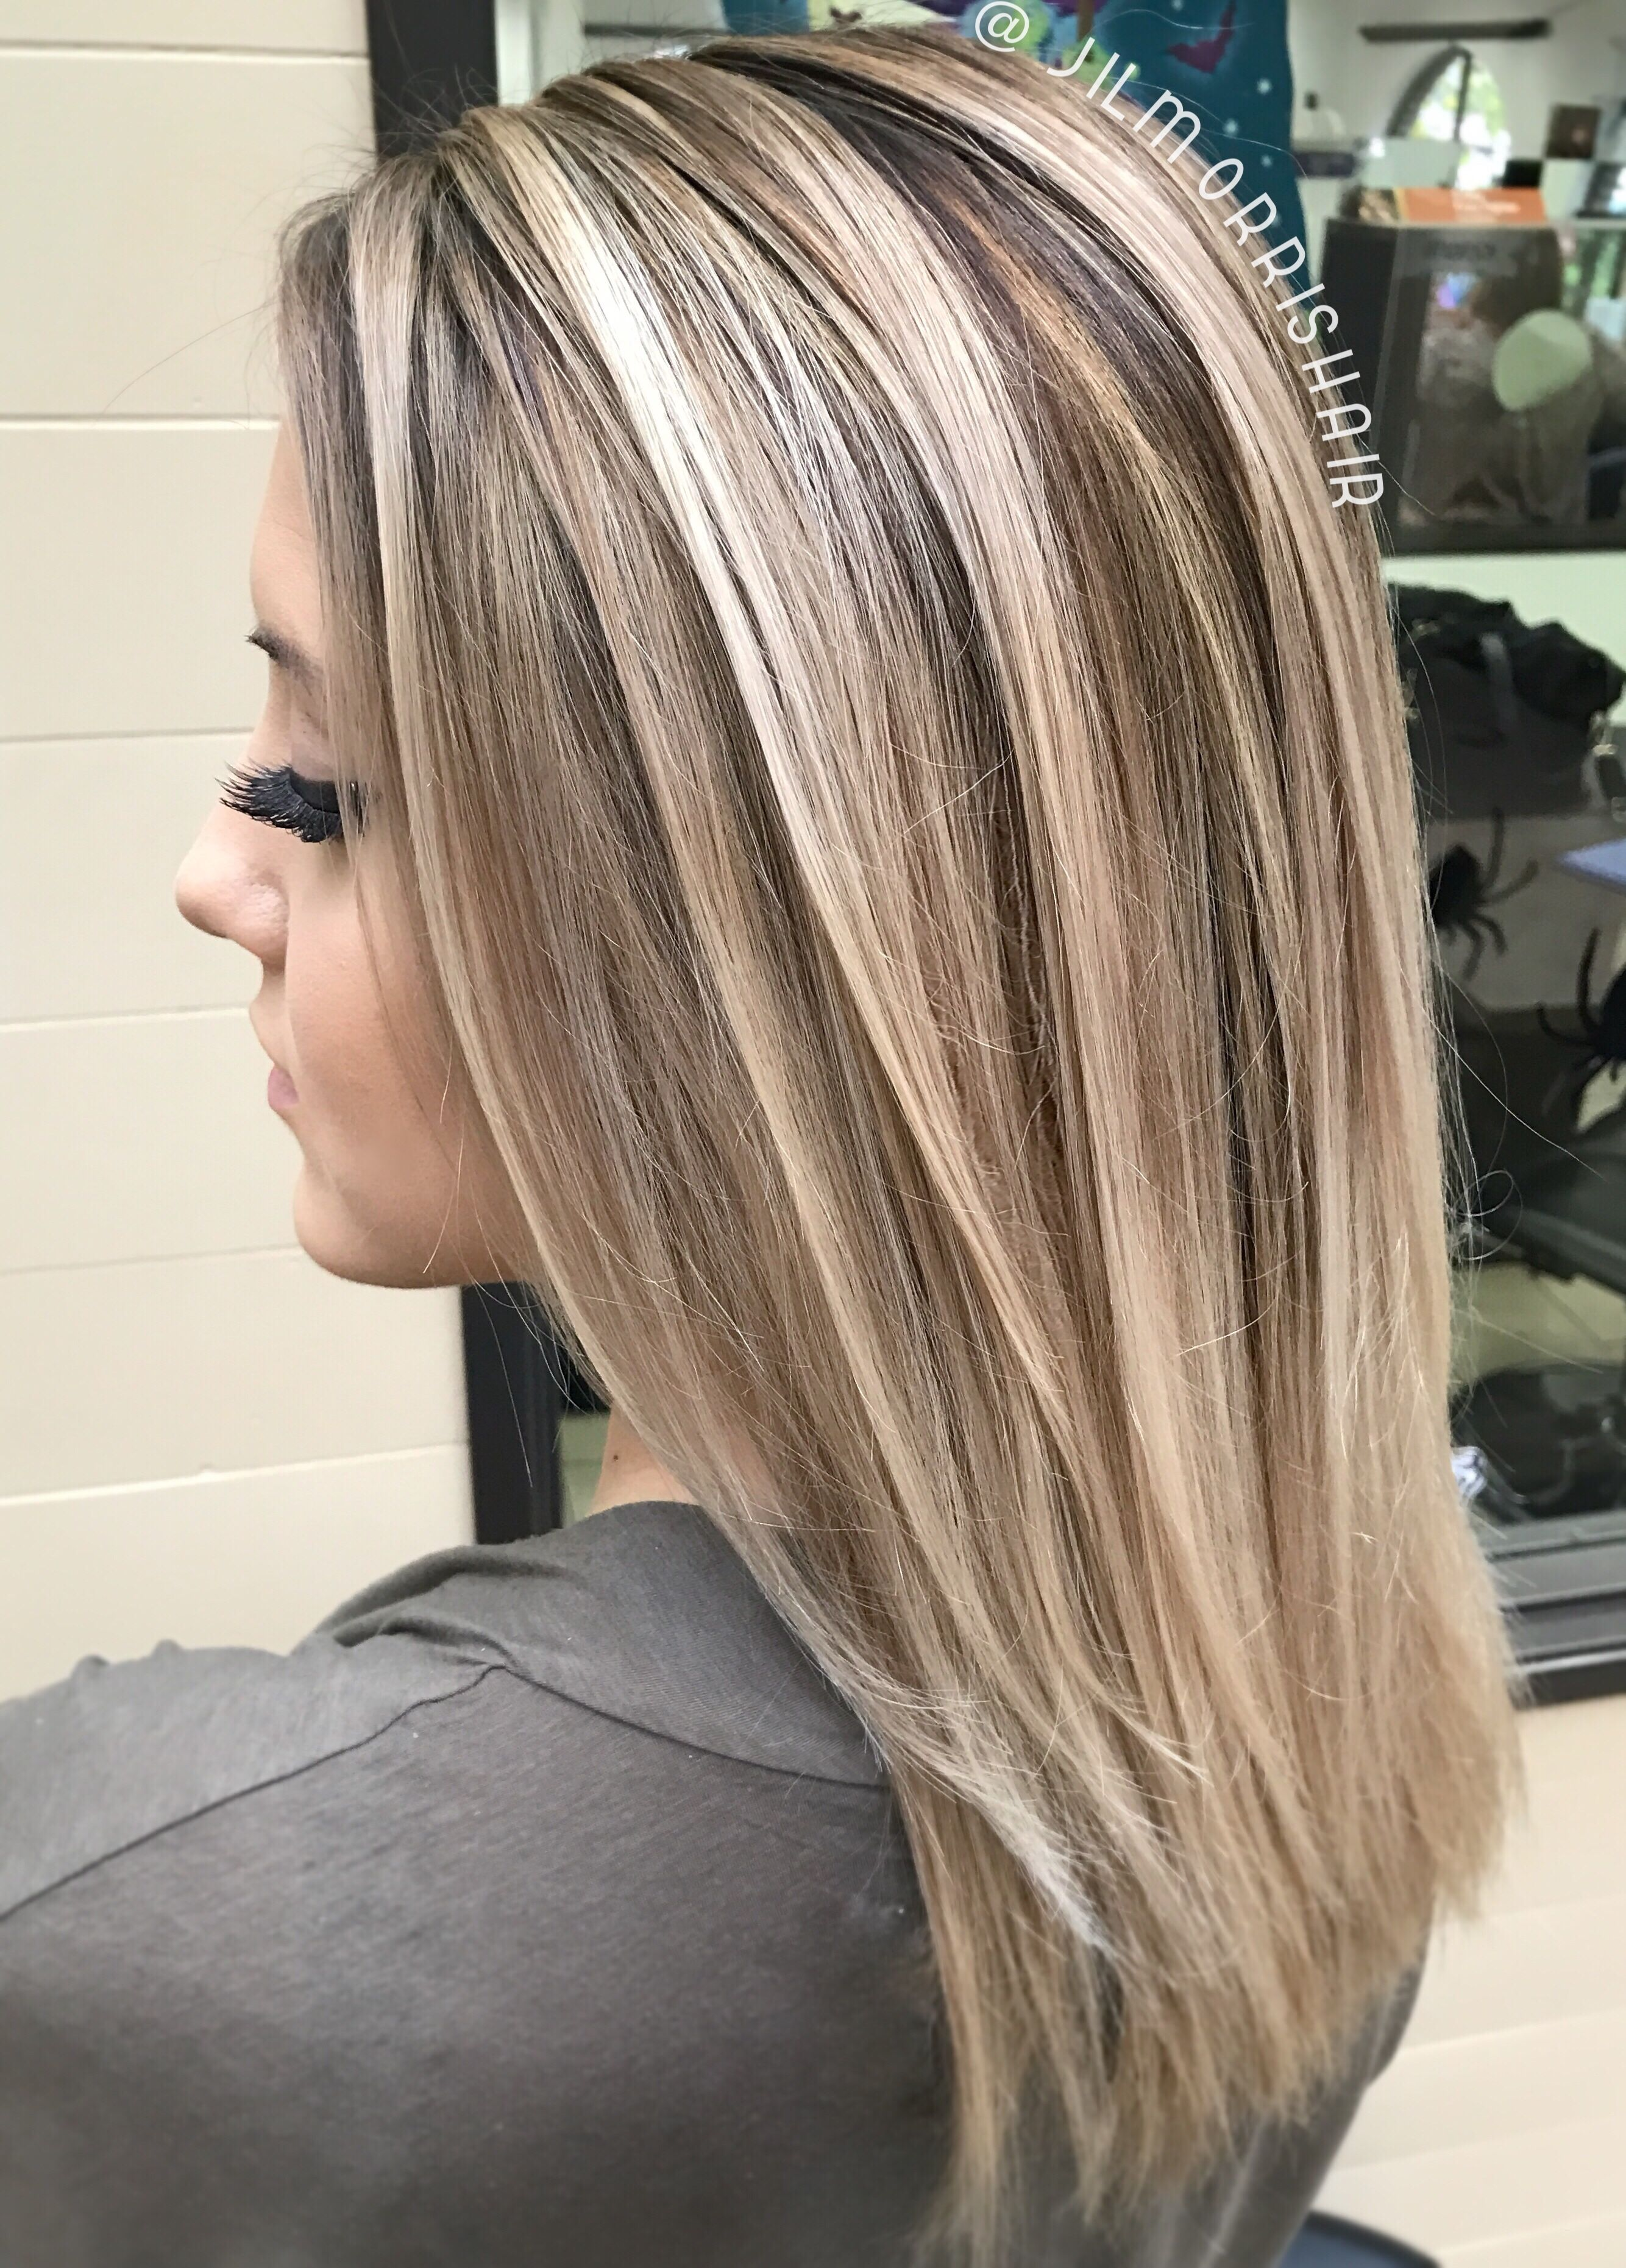 Cool Ashy Blonde Balayage Highlights With Neutral Shadow Root